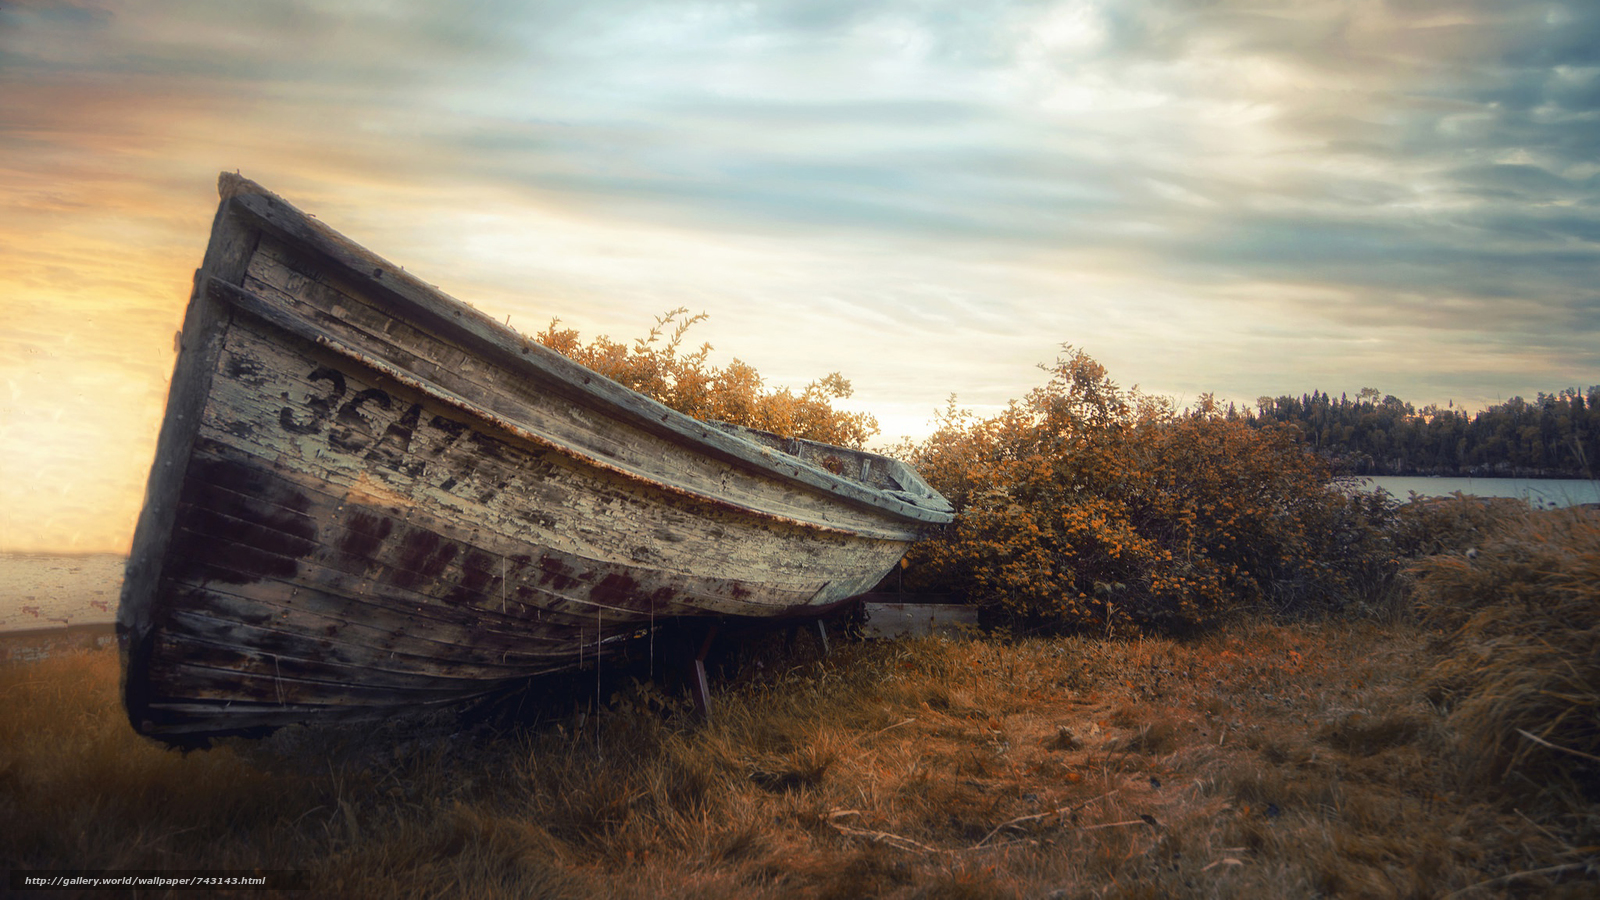 a boat, boats, landscape, nature, water, sunset, peace, relaxation, dawn, Coast, bushes, autumn, clouds, sky